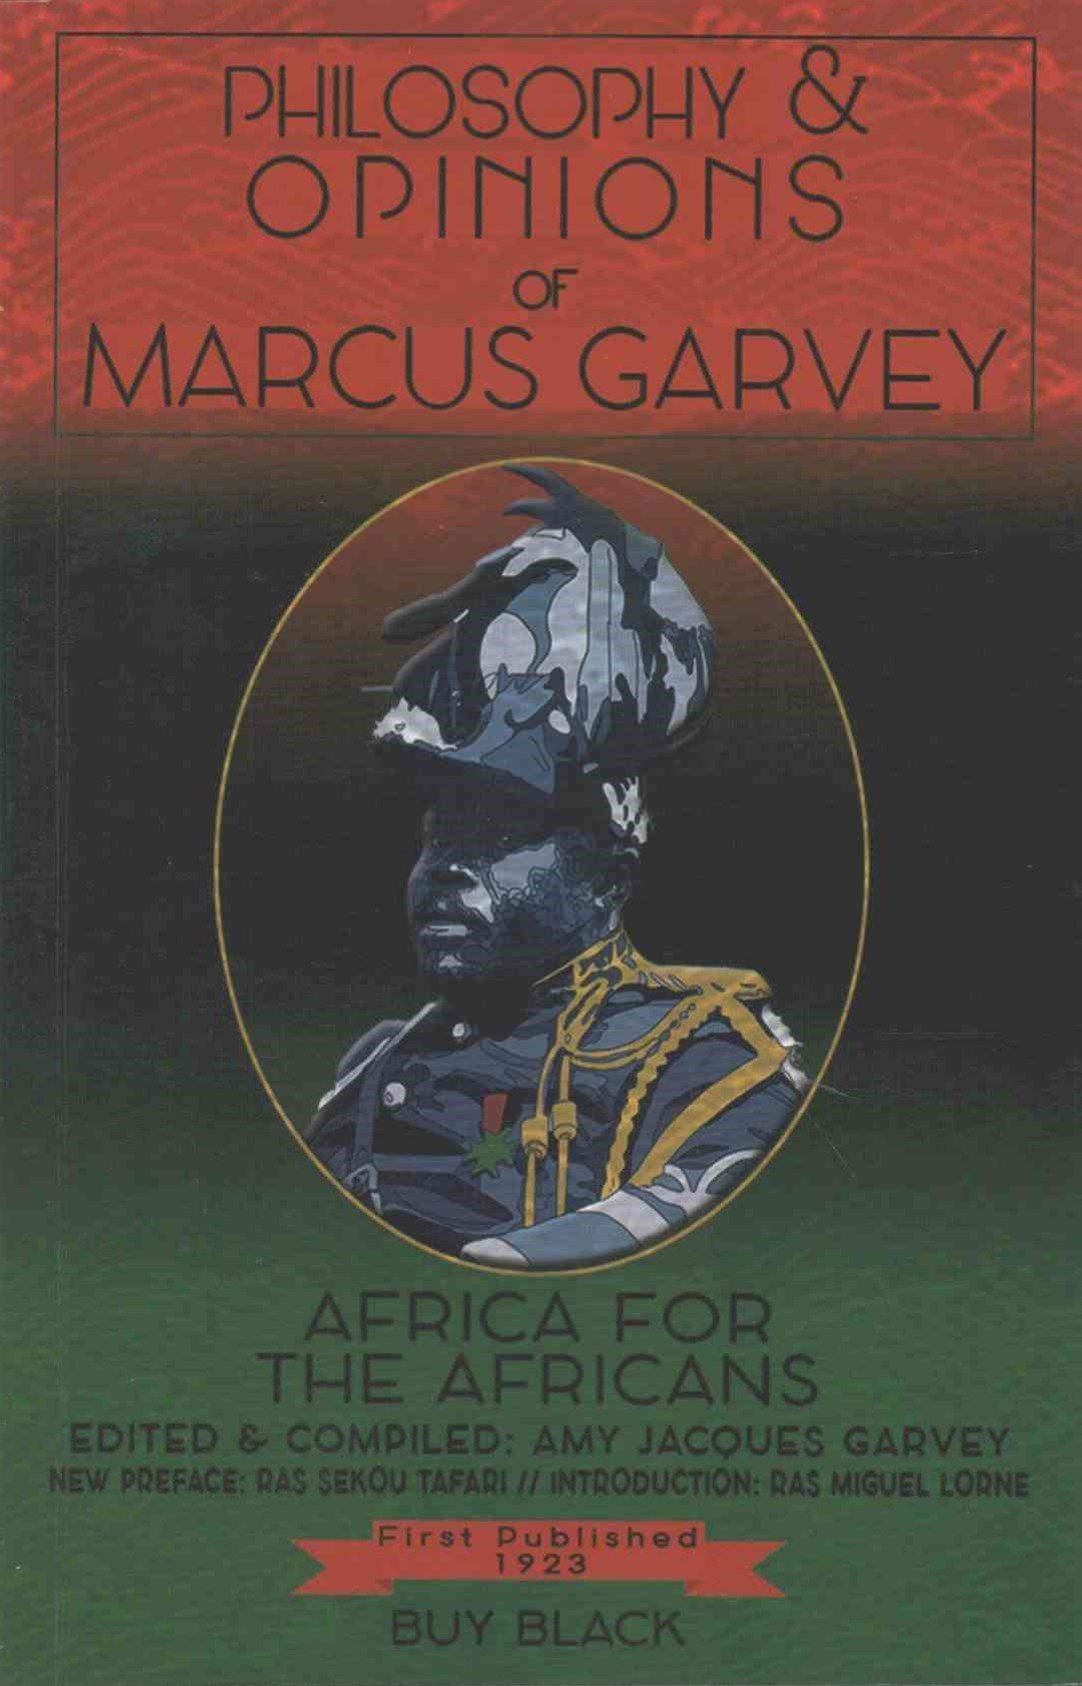 Philosophy & Opinions of Marcus Garvey